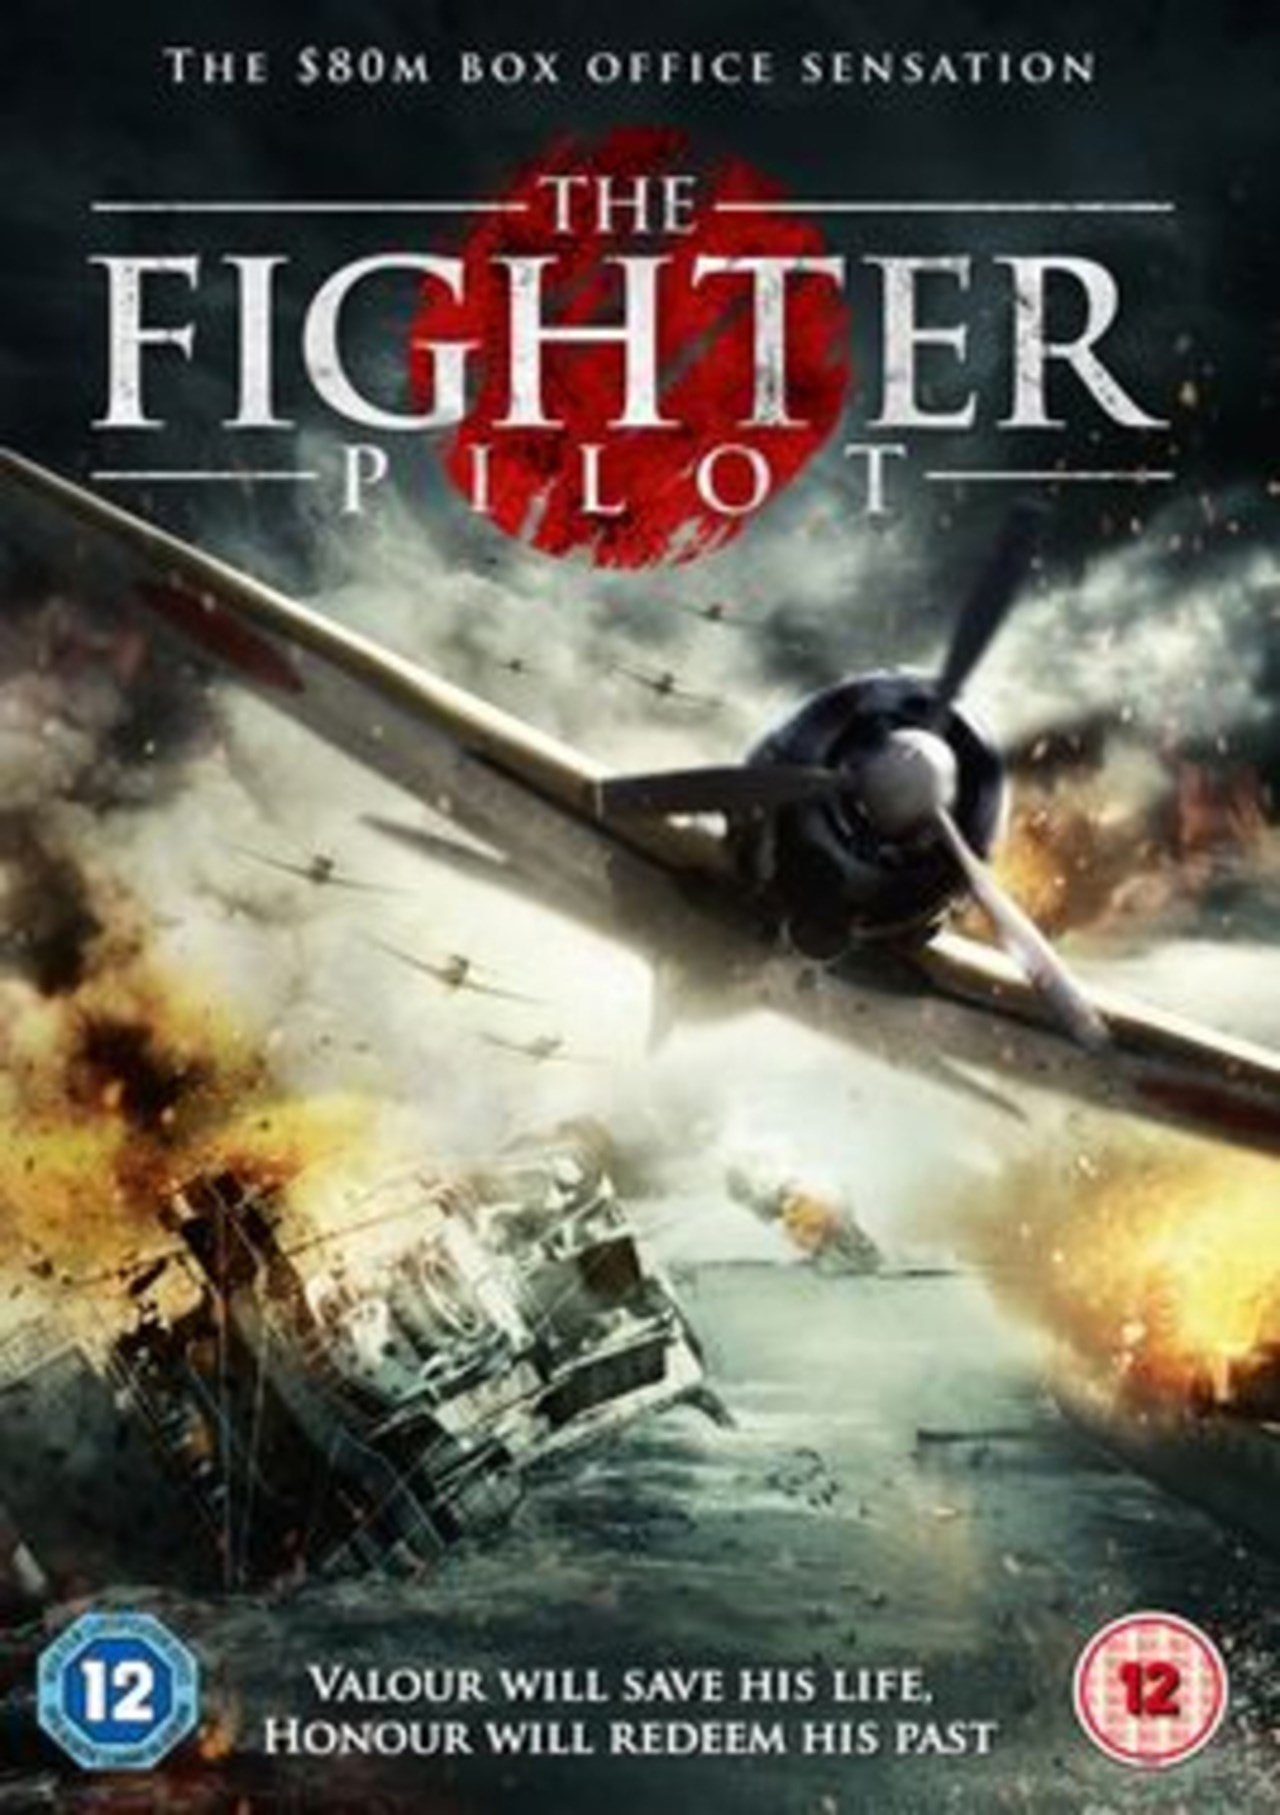 The Fighter Pilot - 1